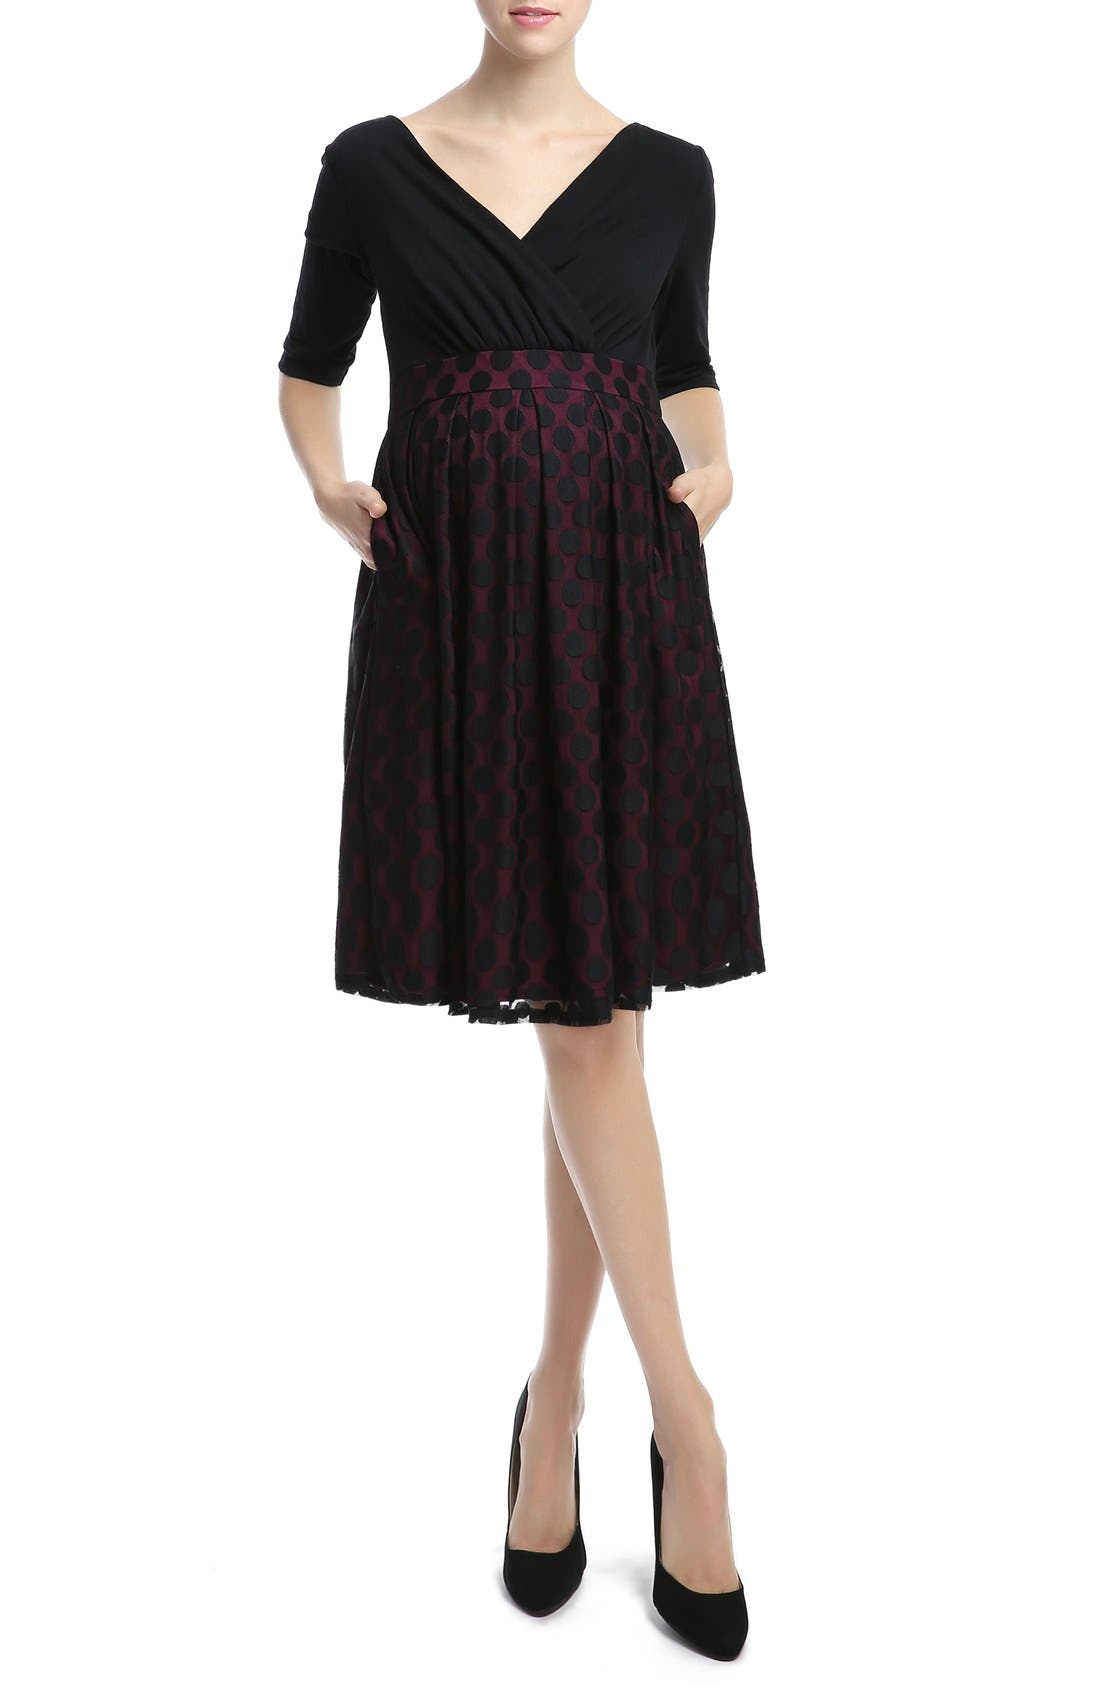 KIMI AND KAI,                             'Liliana' Polka Dot Lace Maternity Dress,                             Main thumbnail 1, color,                             003